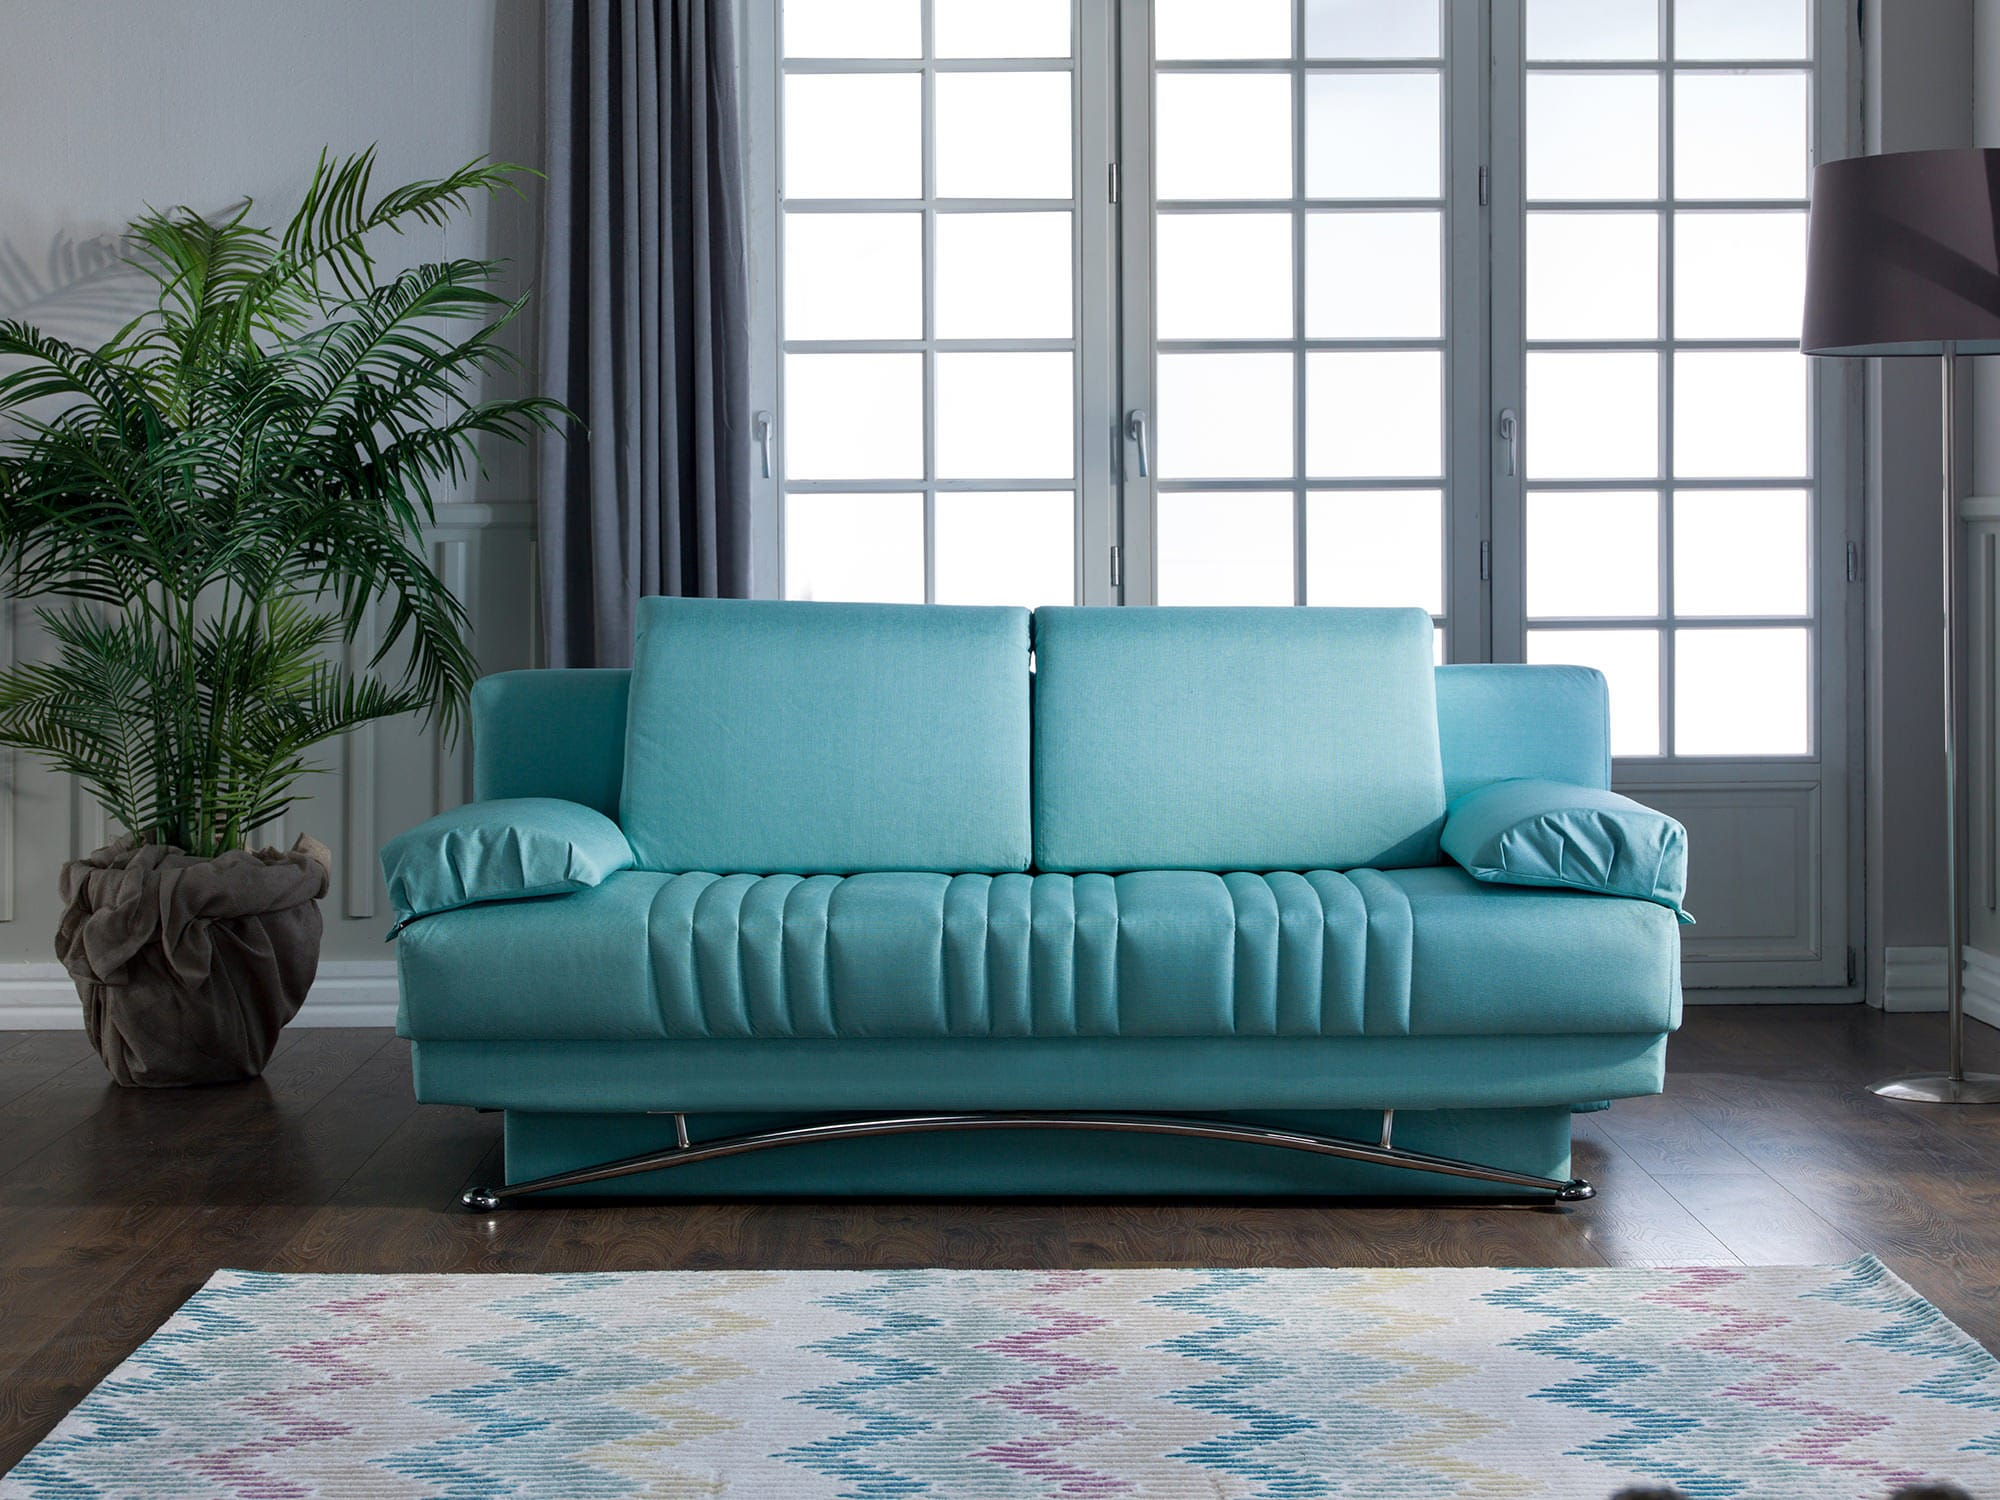 Fantasy Coton Seafoam Green Convertible Sofa Bed By Istikbal Furniture (Istikbal  Furniture)